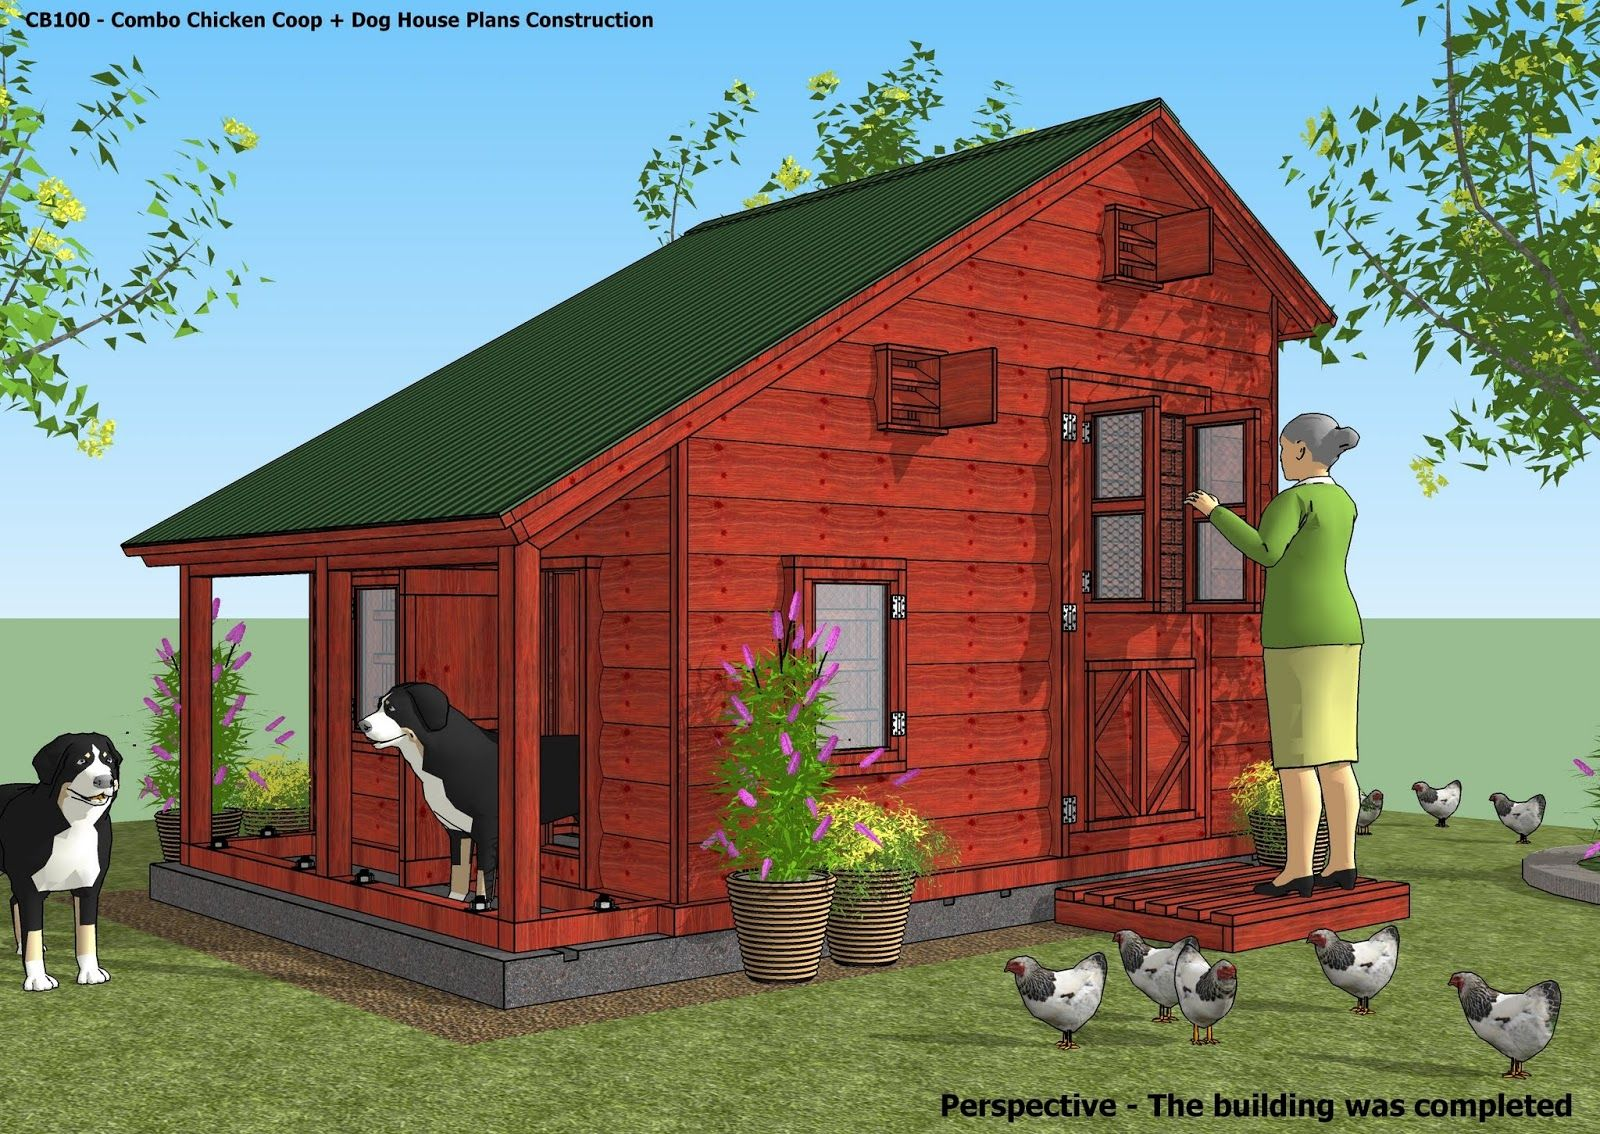 CB100 - Combo Plans - Chicken Coop Plans Construction ...